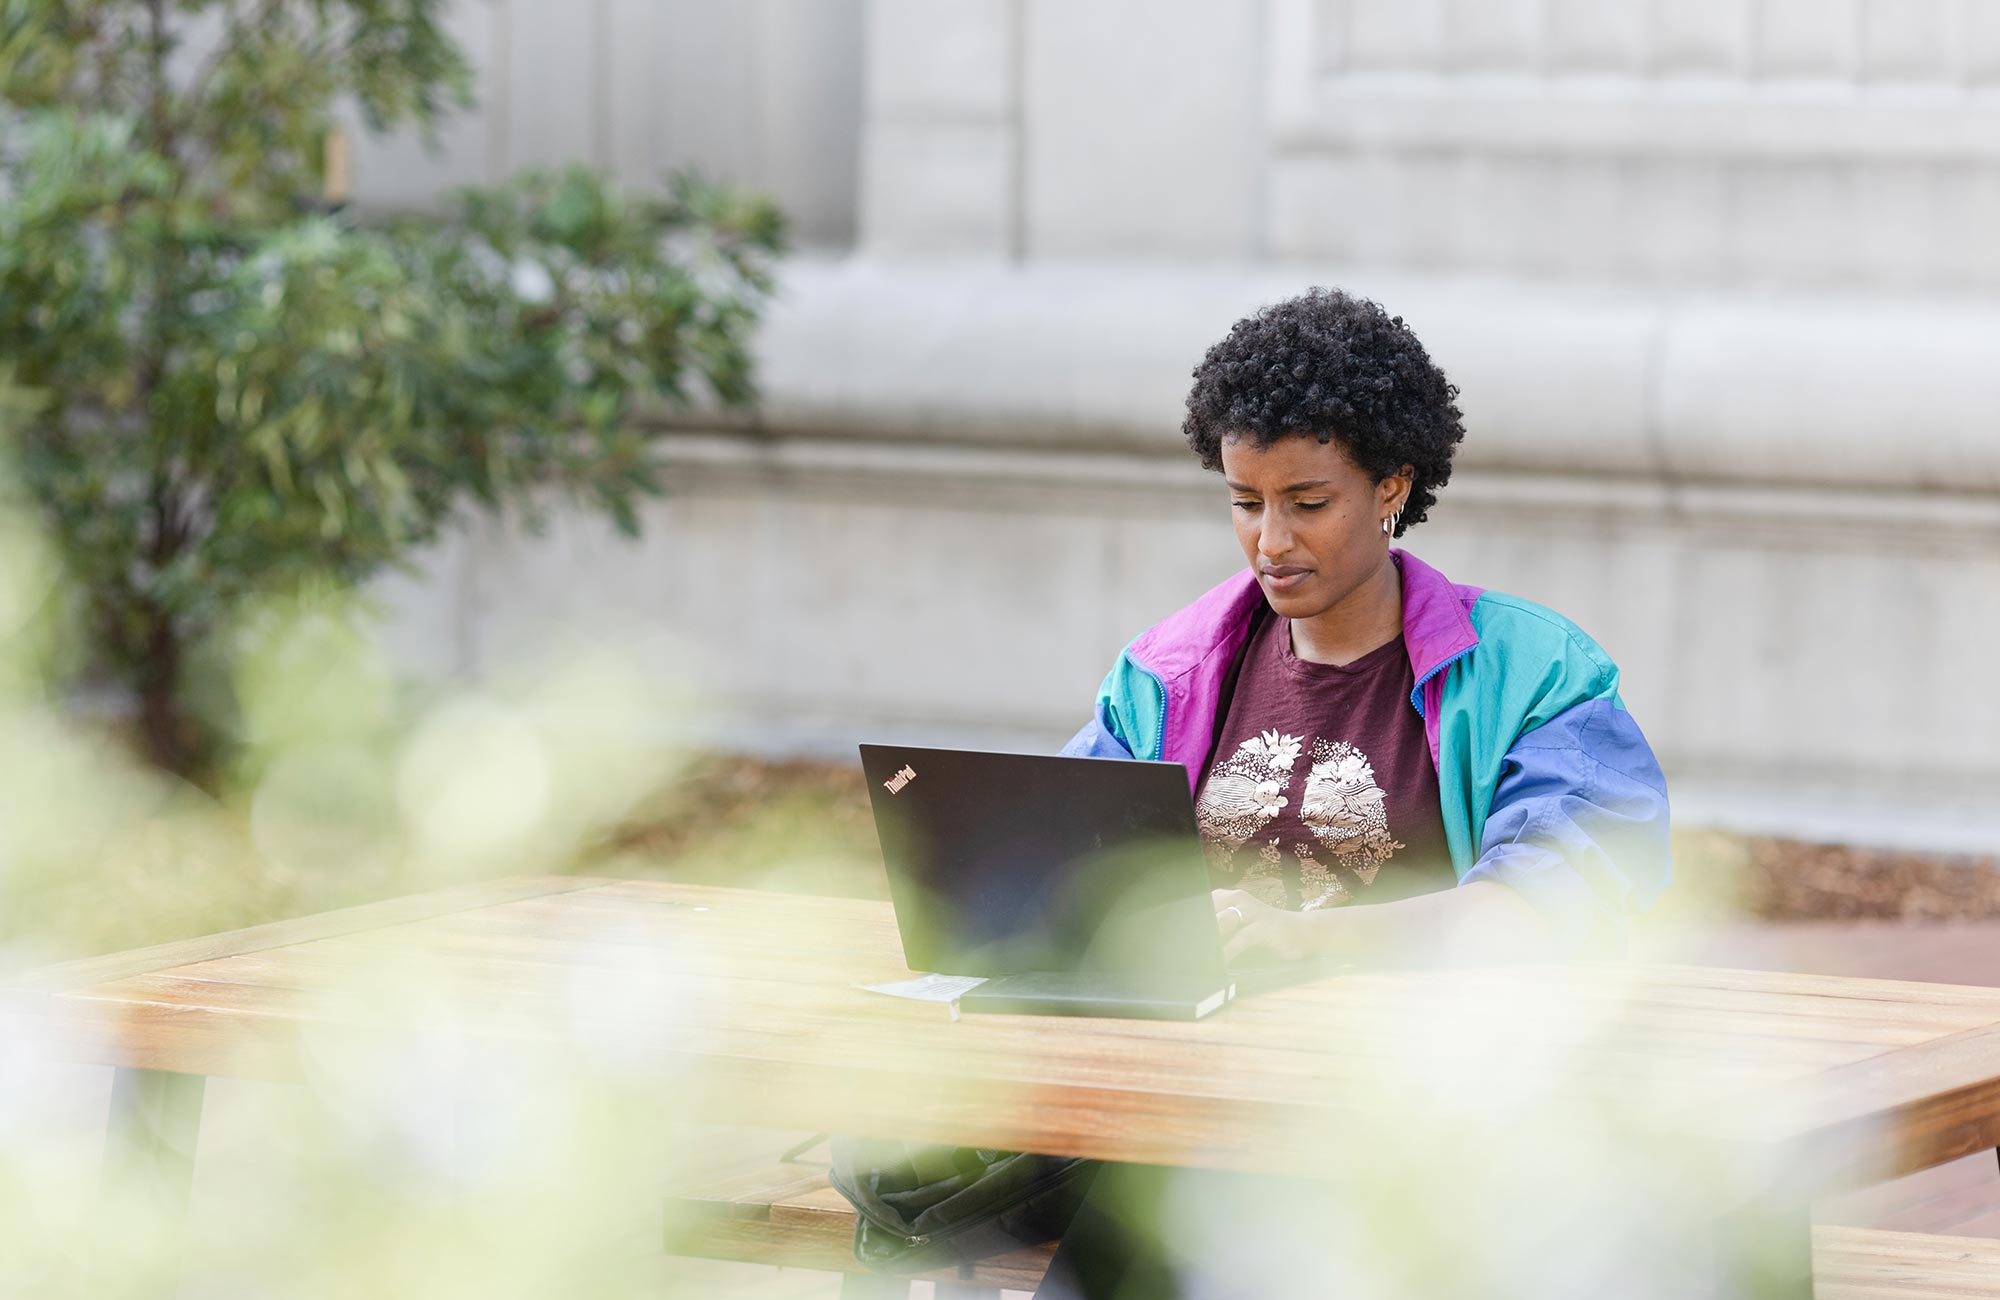 A diptych. On the left, Rediet Abebe sitting outside working on a laptop. On the right, a close-up of Abebe's laptop screen showing an article on increasing the presence of Black people in the field of artificial intelligence.